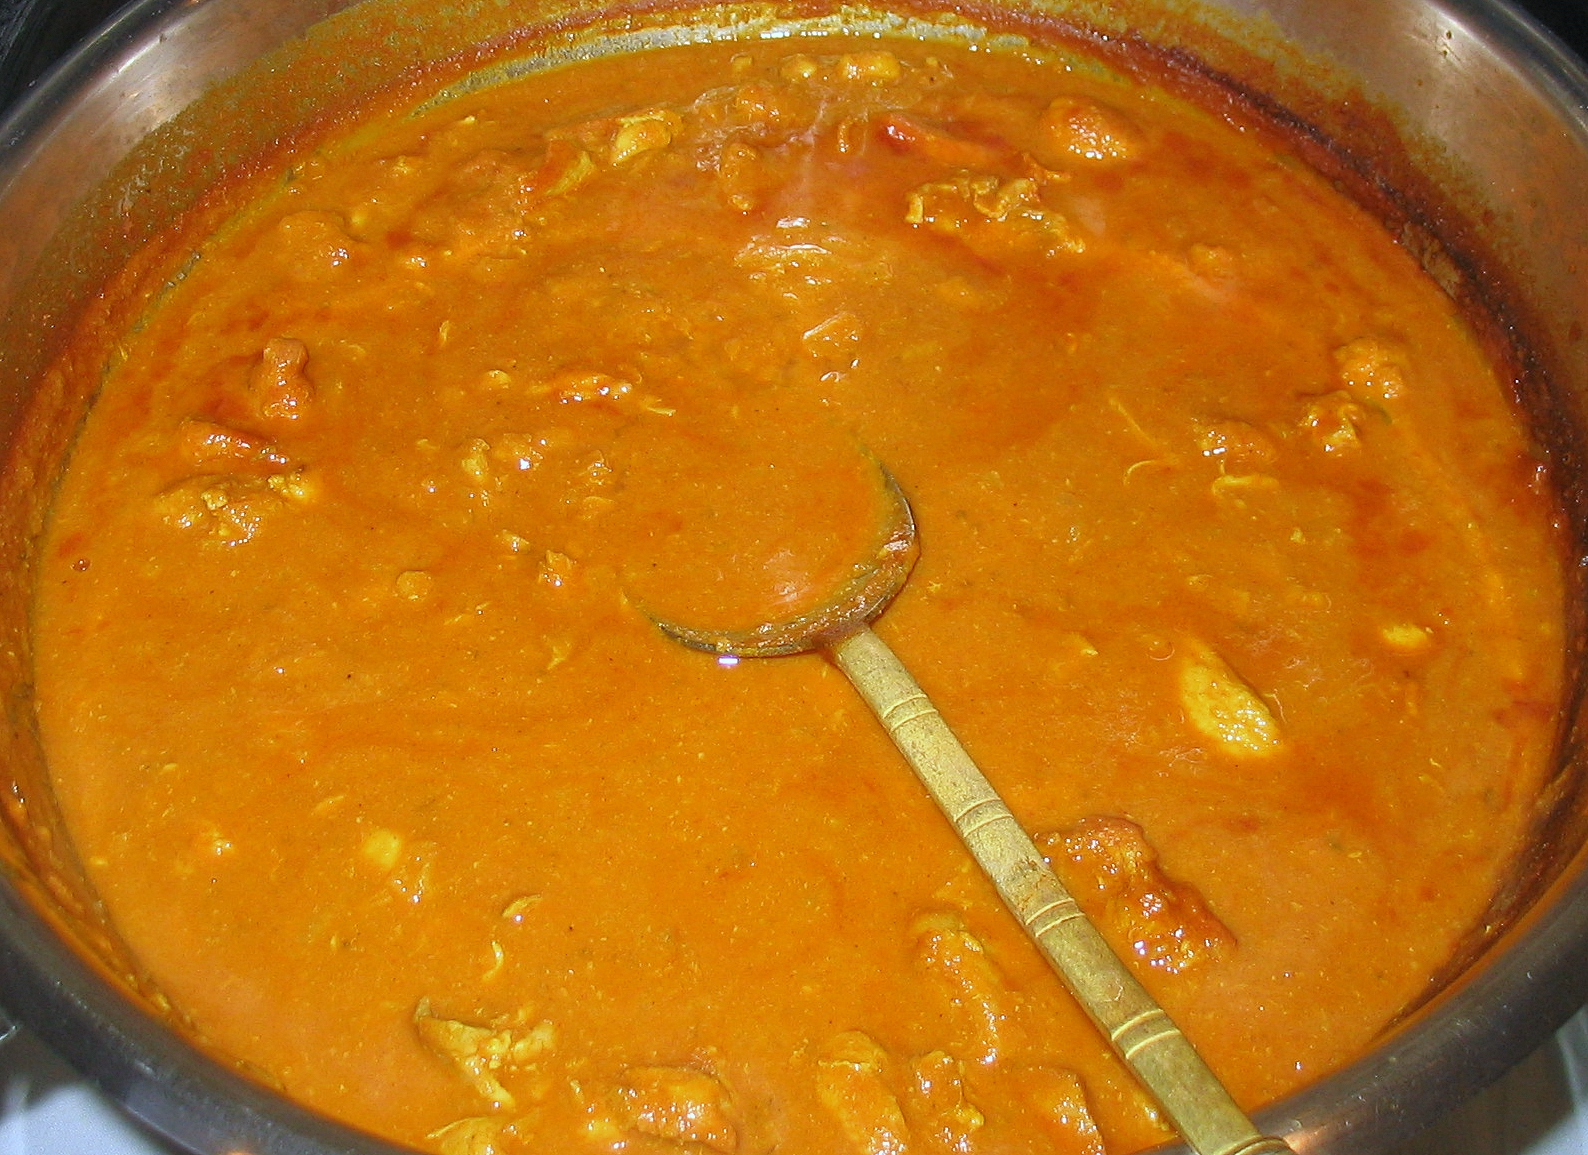 File:Chicken curry.jpg - Wikipedia, the free encyclopedia